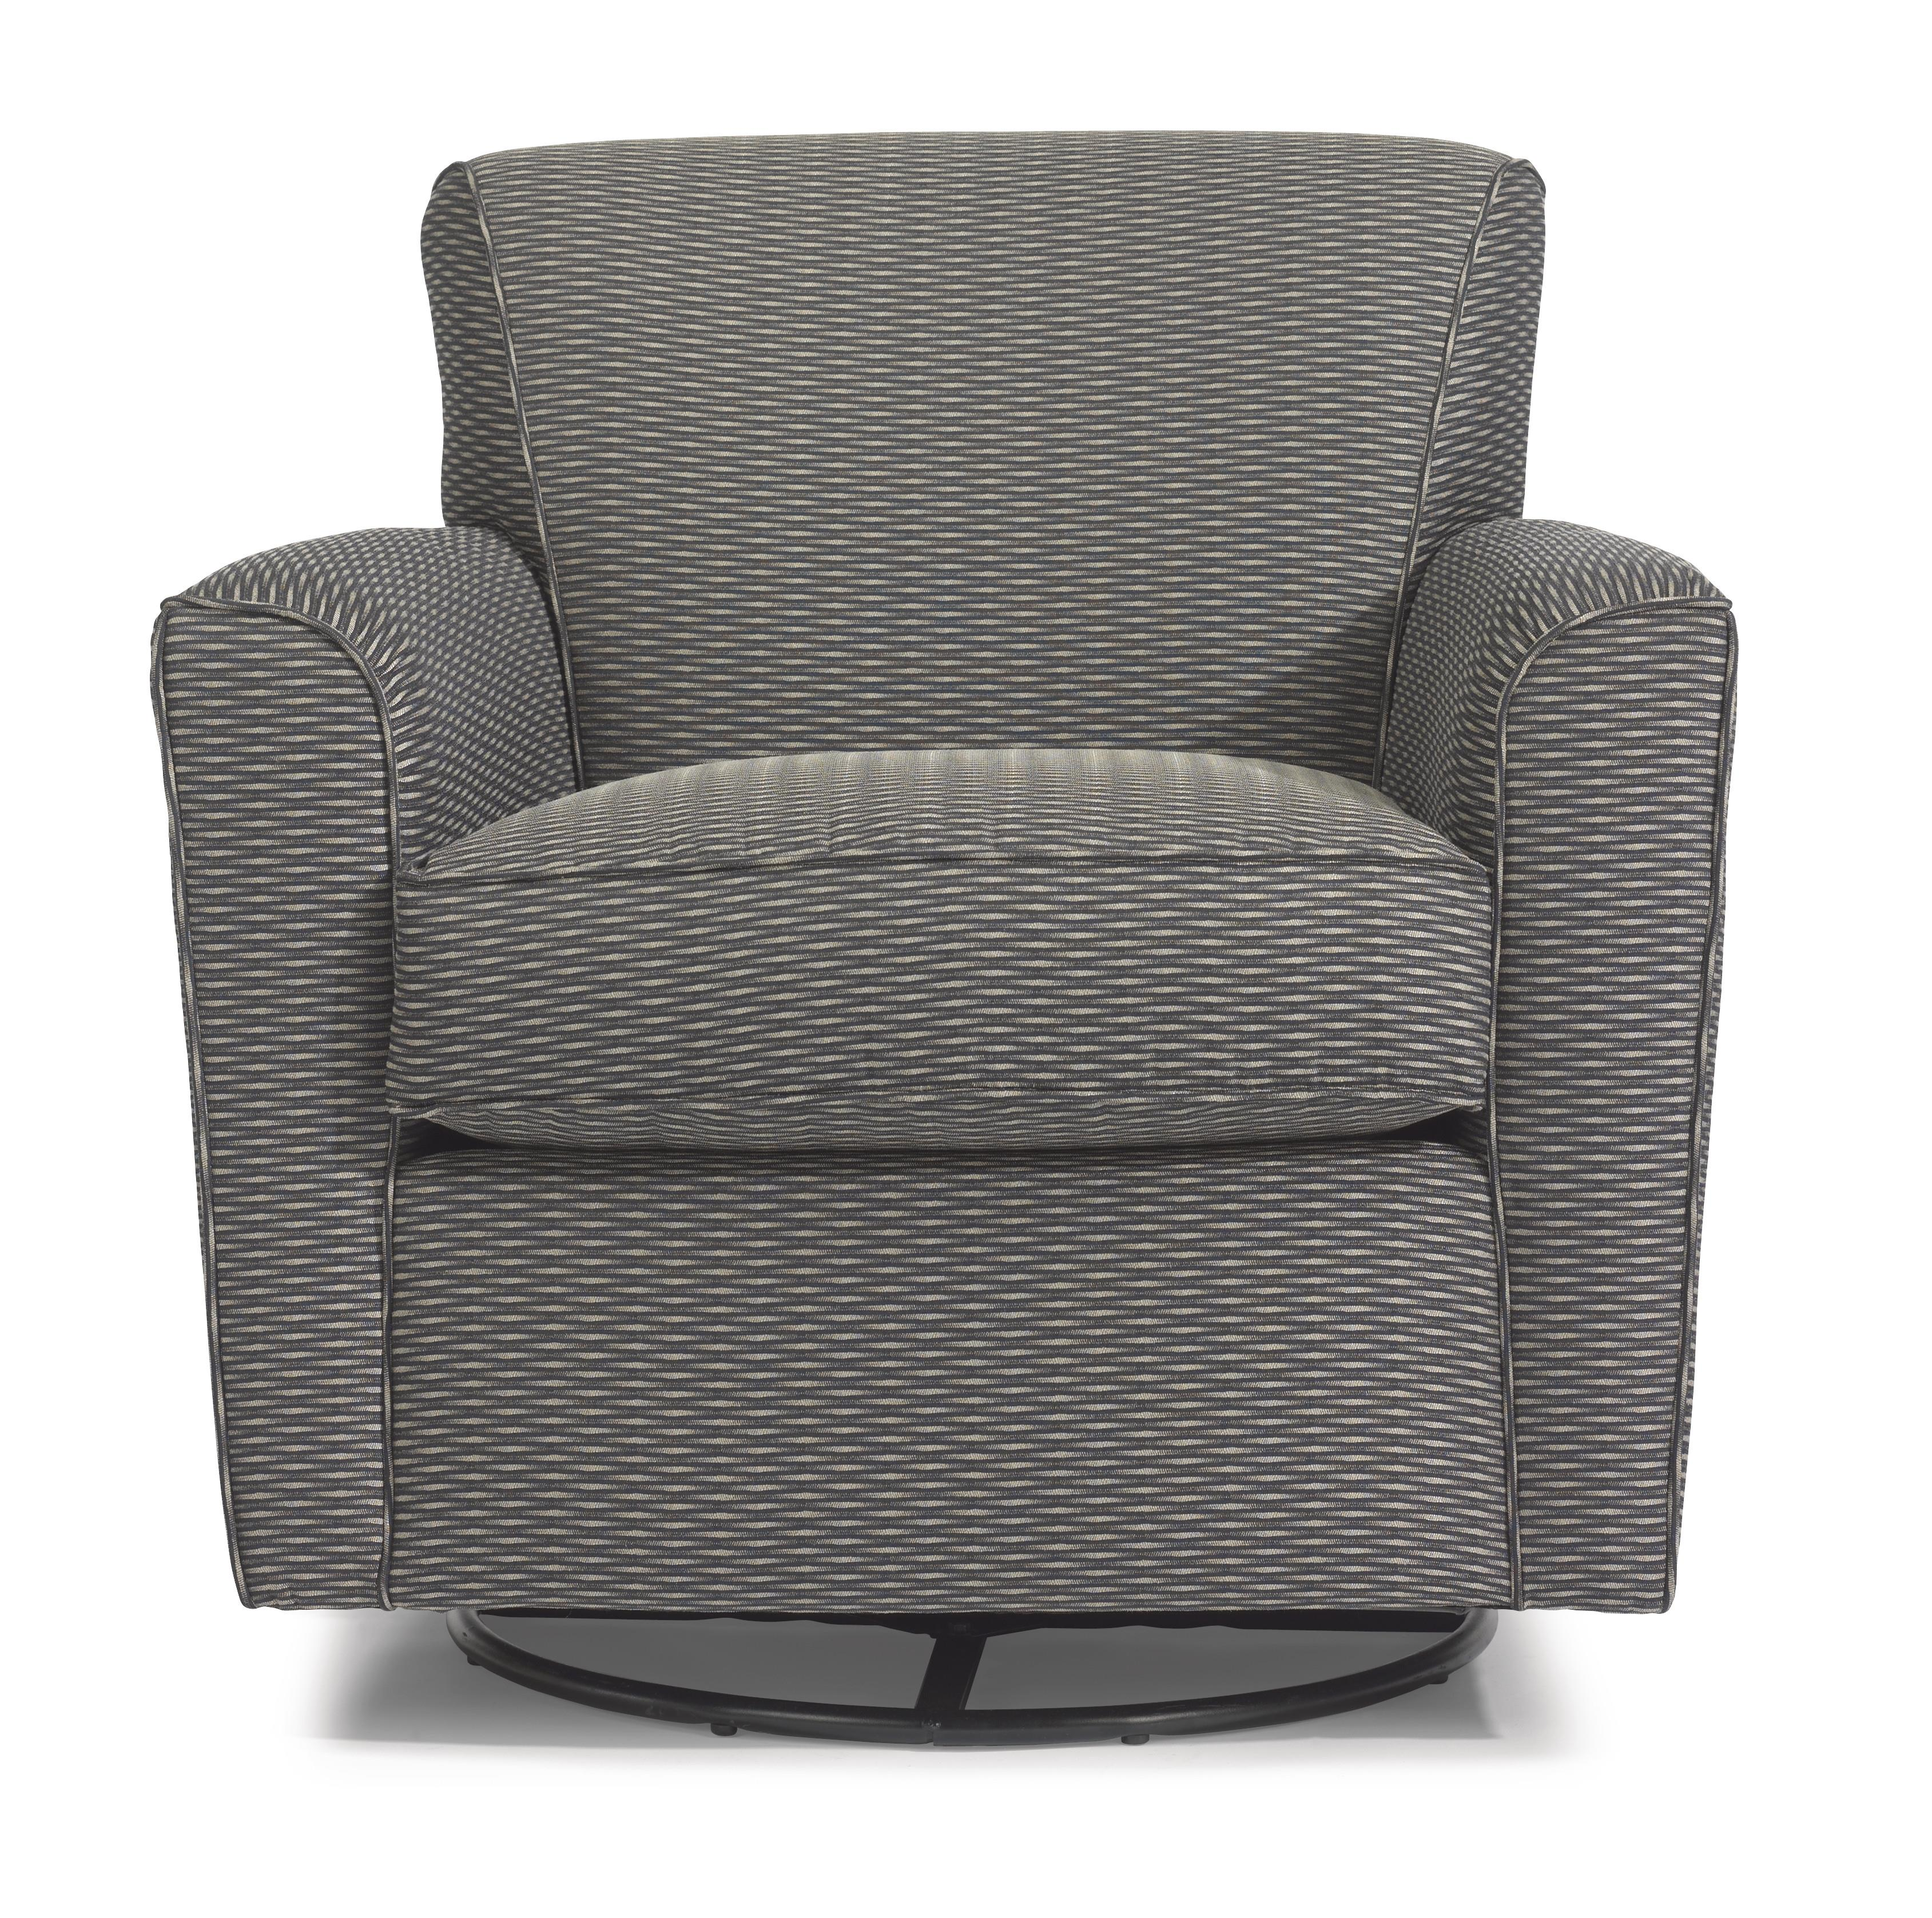 sofa mart lakewood bls dark grey set flexsteel kingman rocking swivel gliding chair